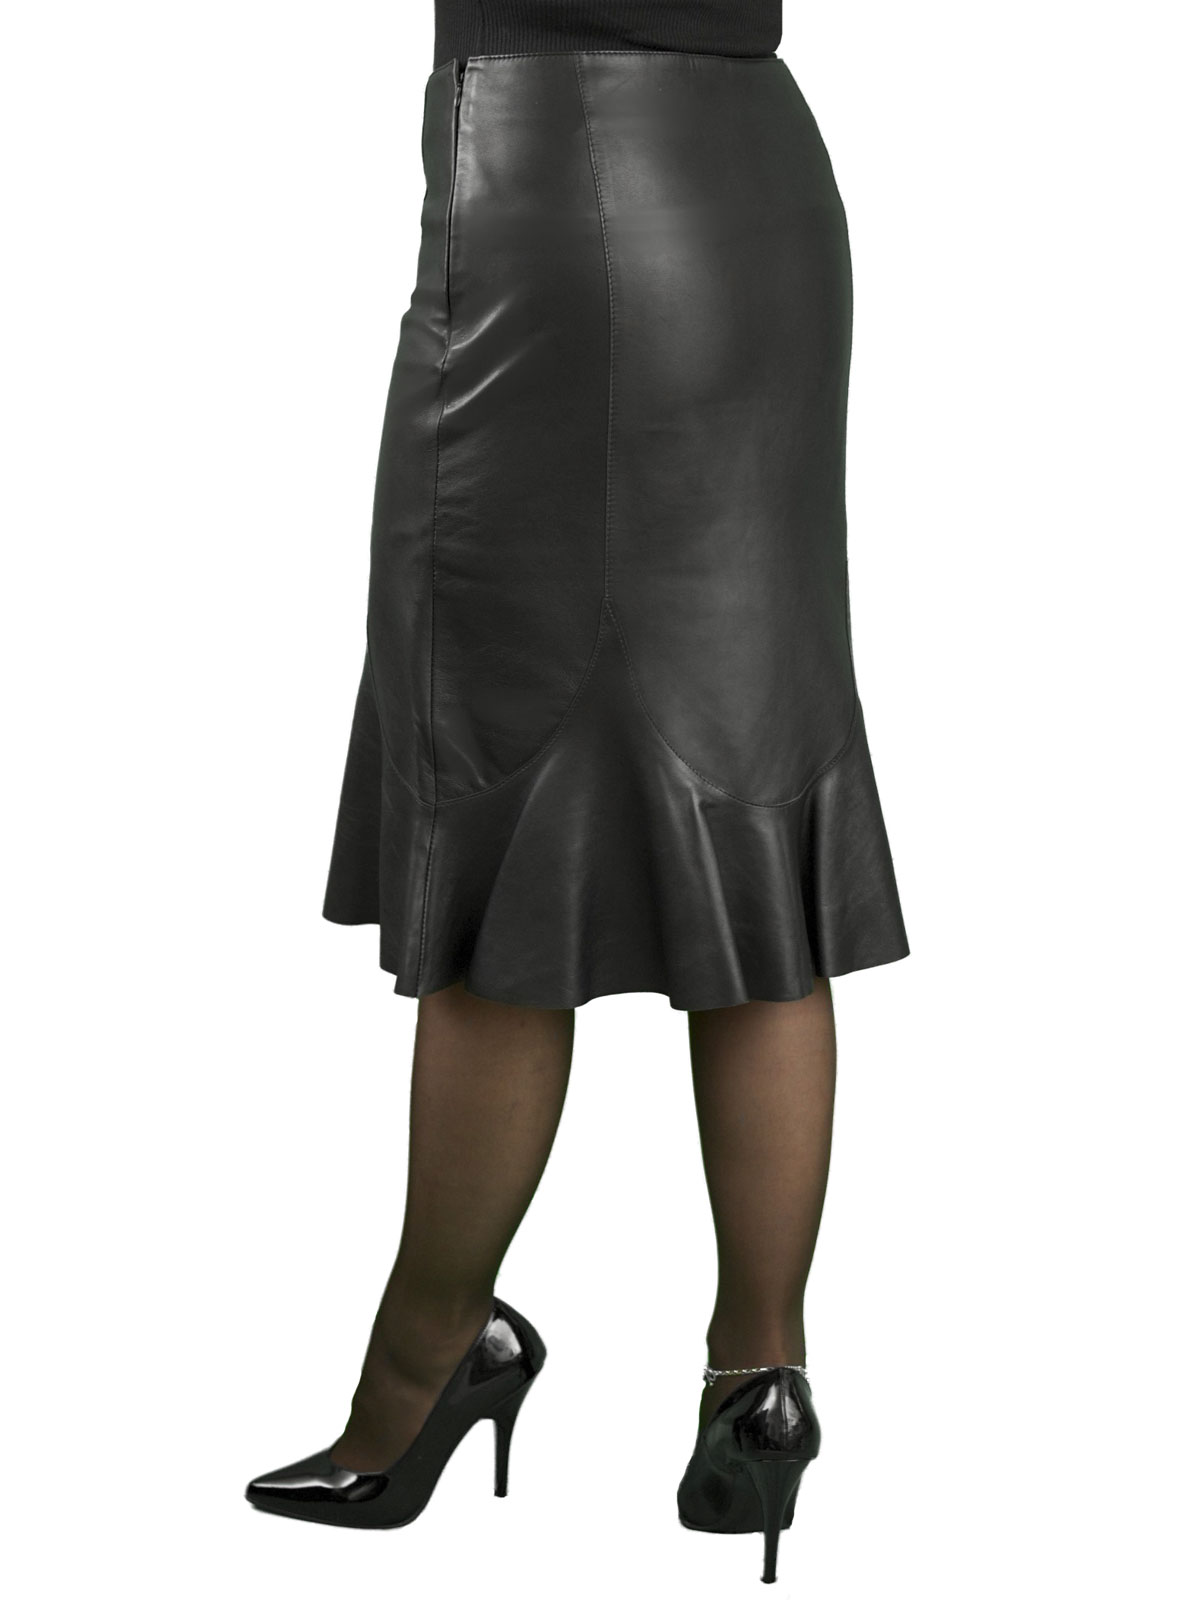 fishtail leather skirt below knee length tout ensemble